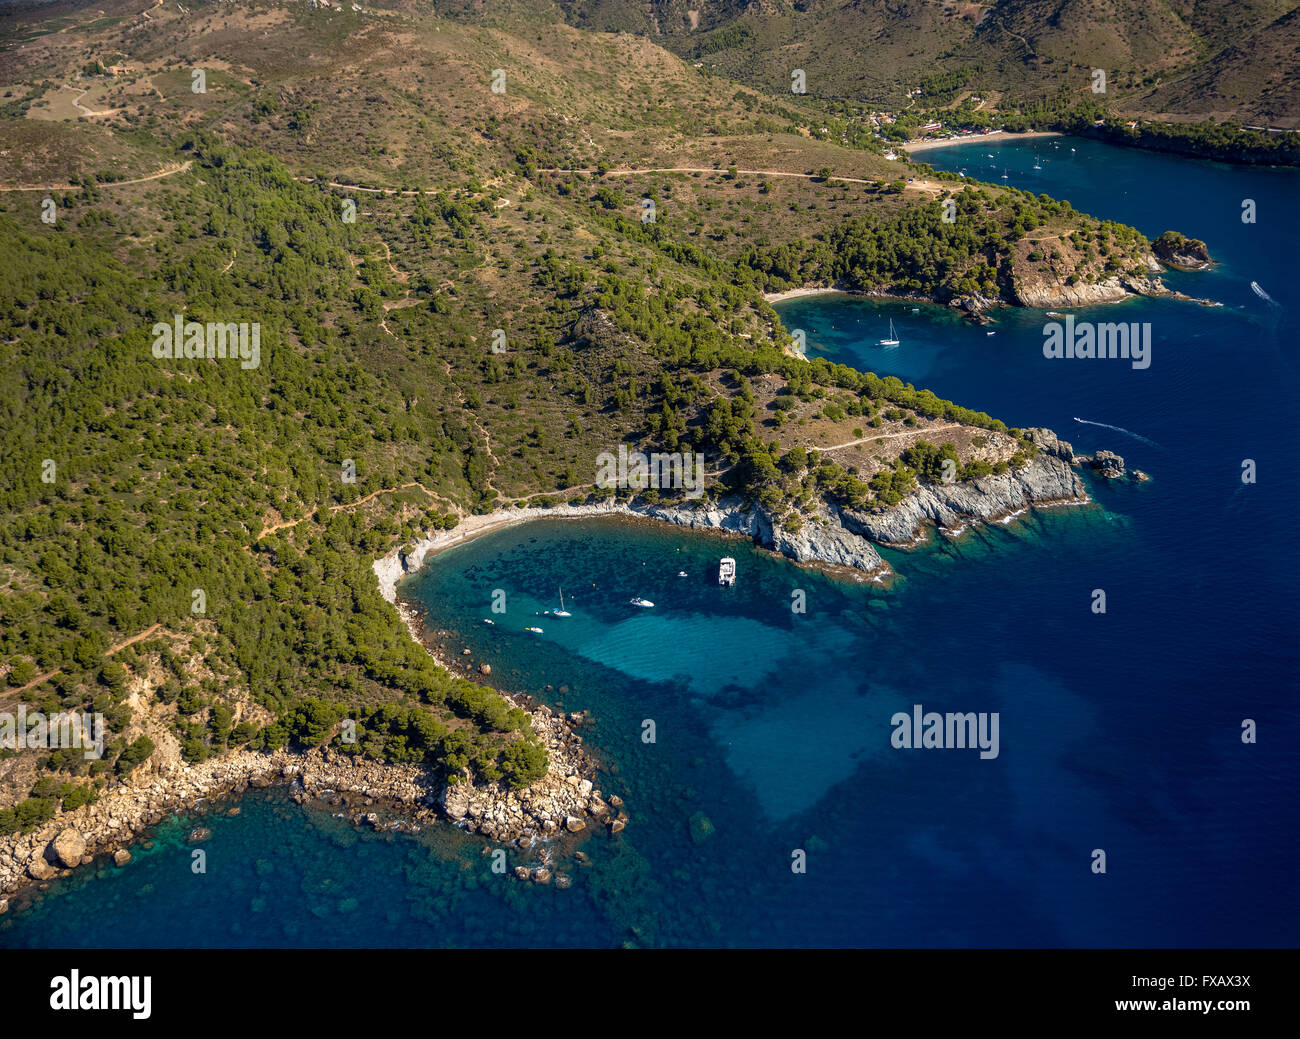 Aerial view, bays for boats and divers, Mediterranean Bay of Roses, blue water, Roses, Costa Brava, Catalonia, Spain, - Stock Image